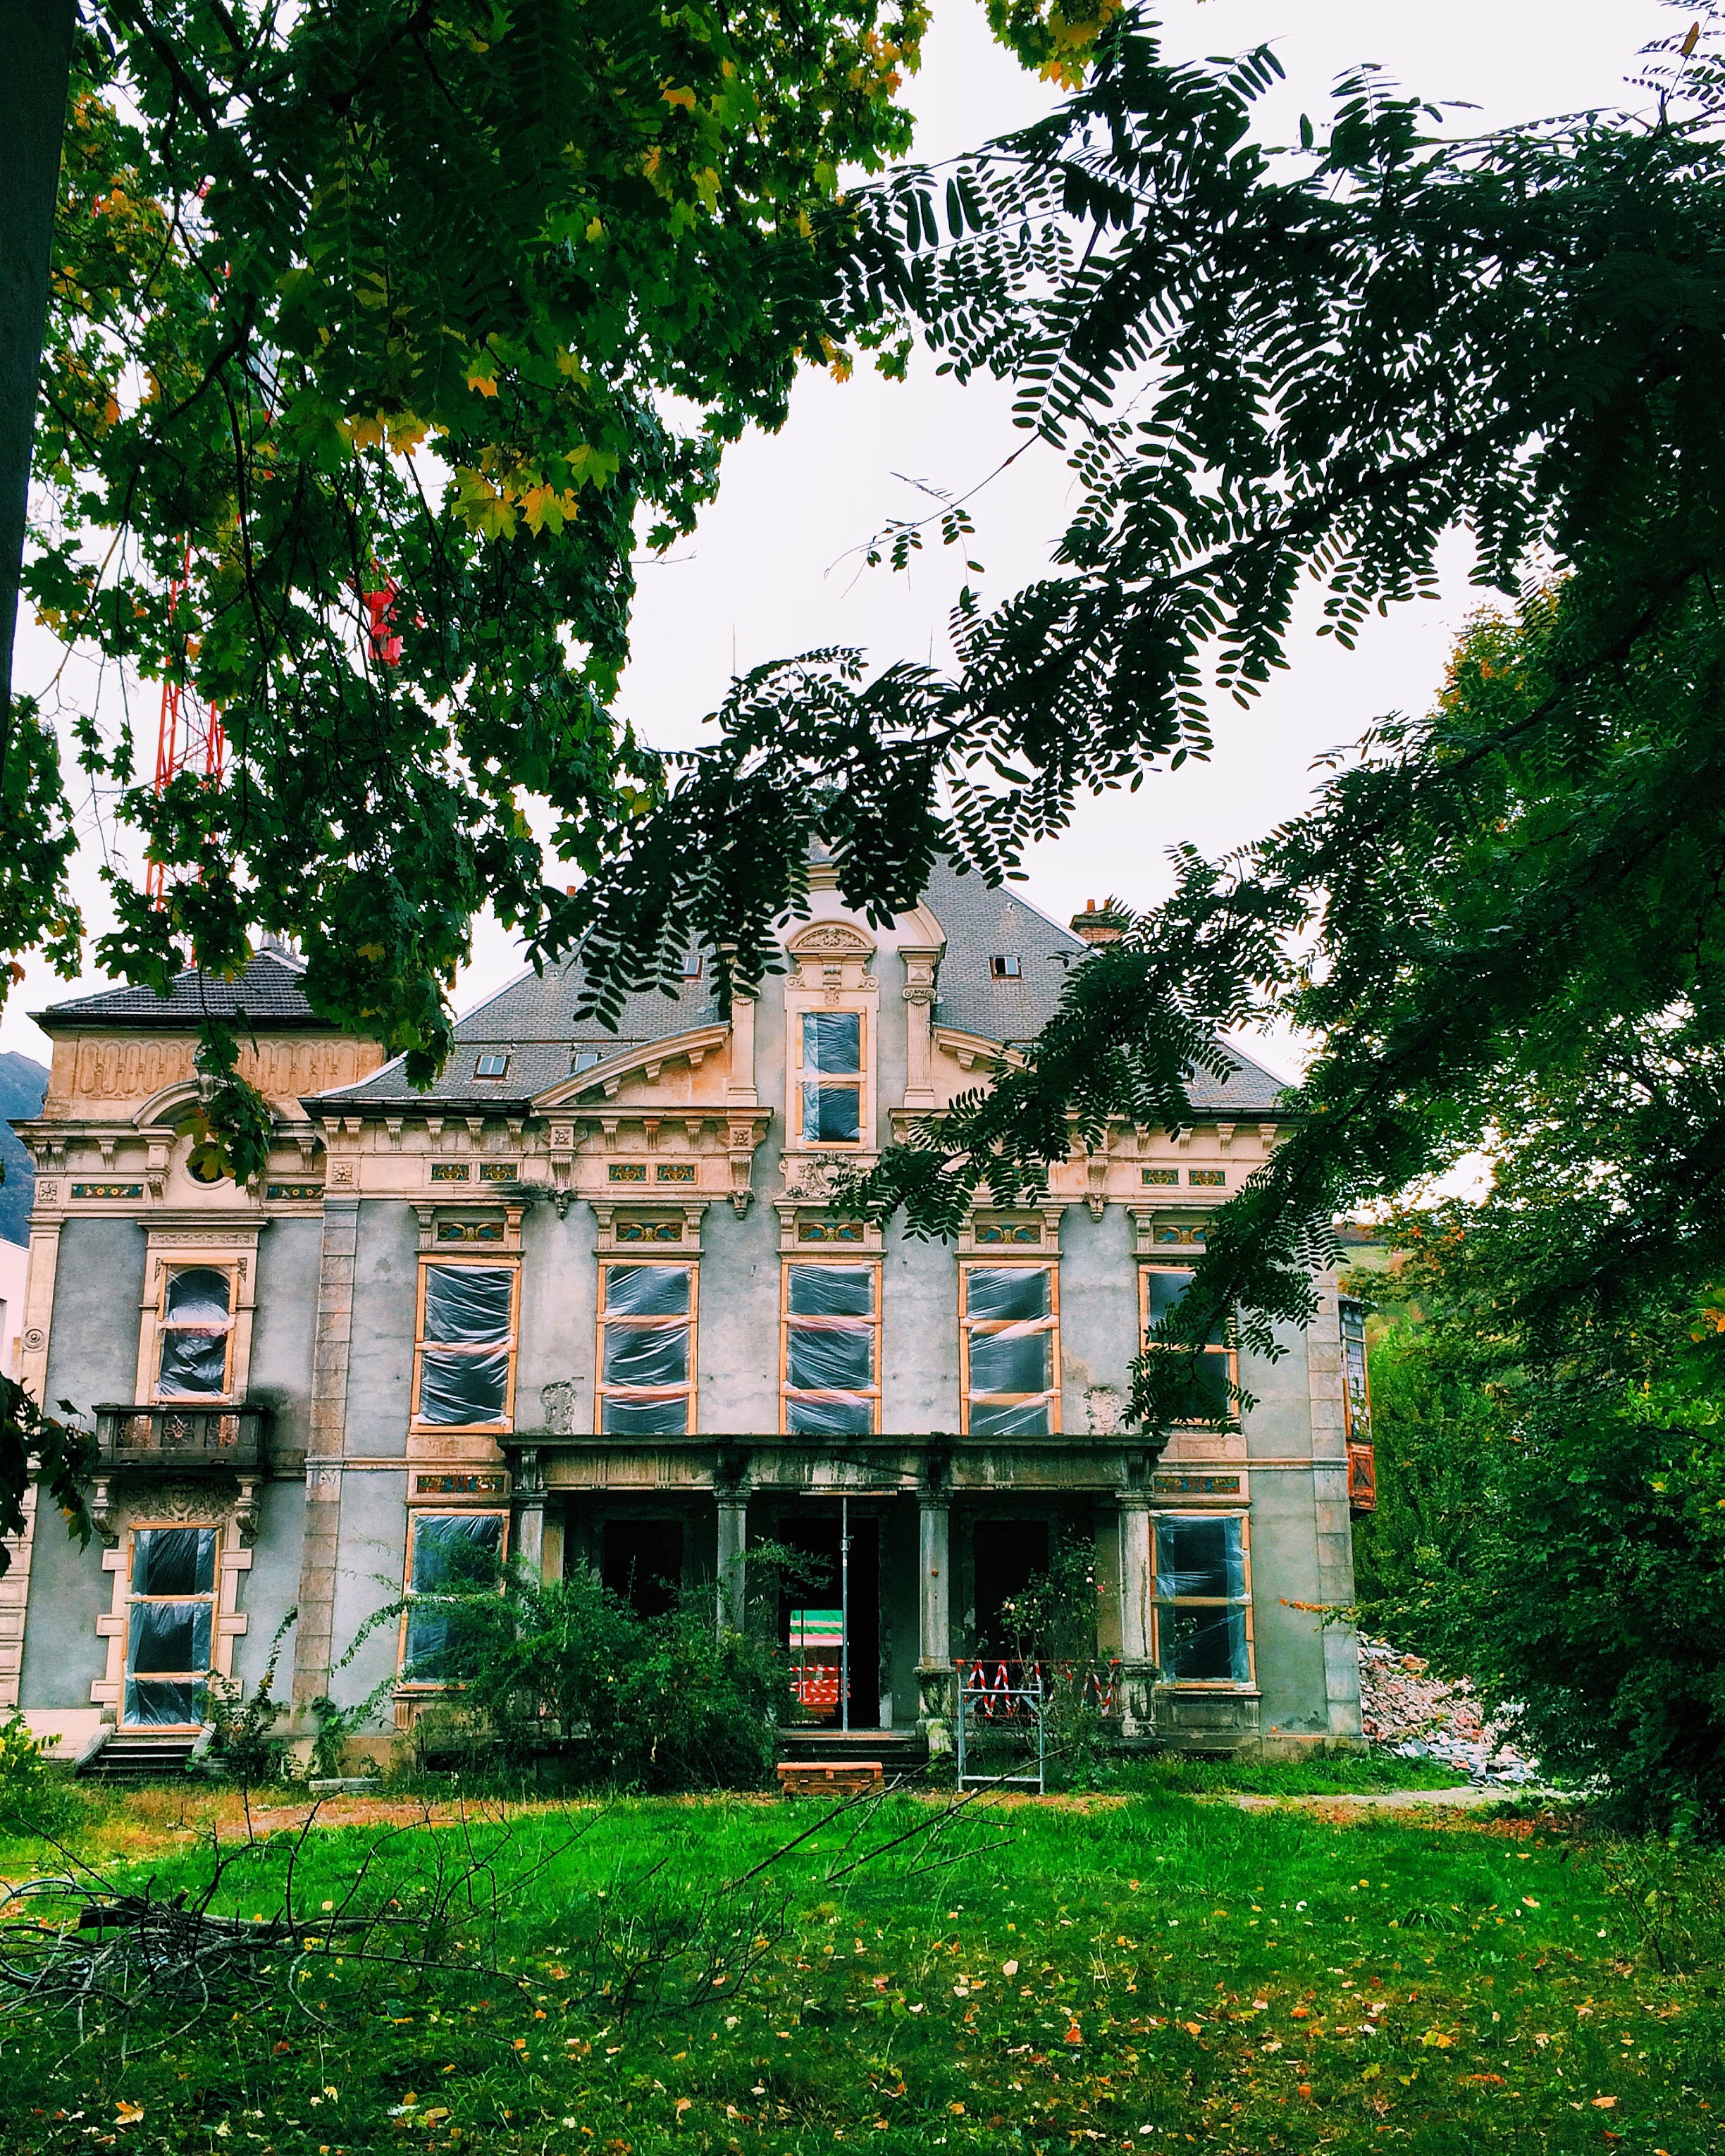 A house that is being restored into a retired living place. I would love to know the history of the place and what life was like for those that lived there.